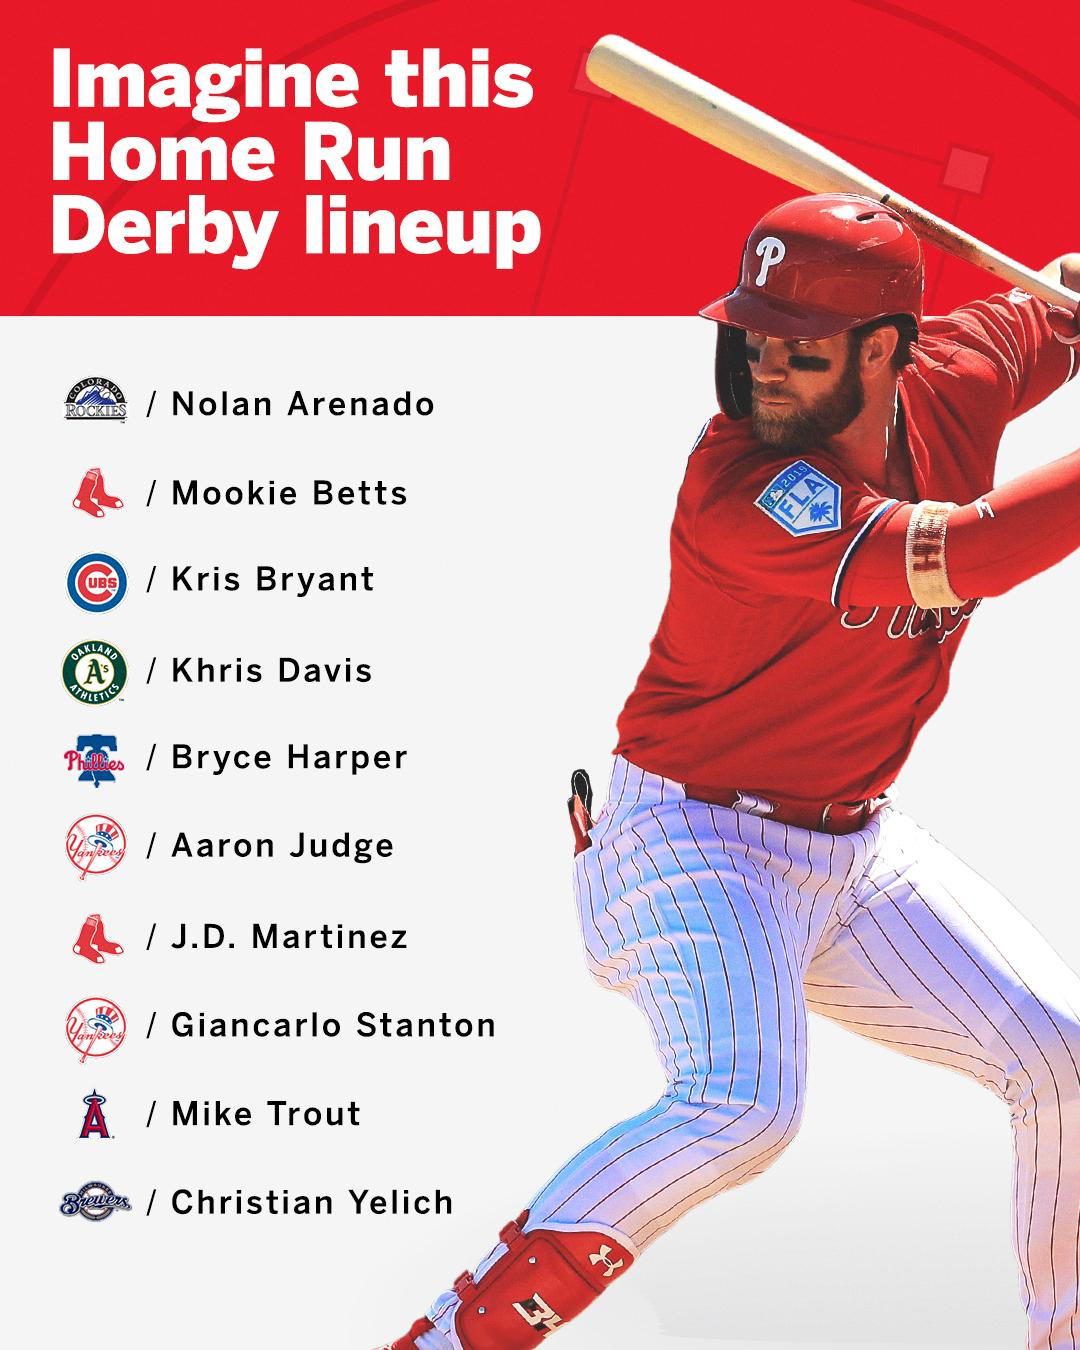 The winner of the Home Run Derby is going to get $1 million, sources tell ESPN.  Who'd you take? (via @JeffPassan) https://t.co/zjAQOptH3h